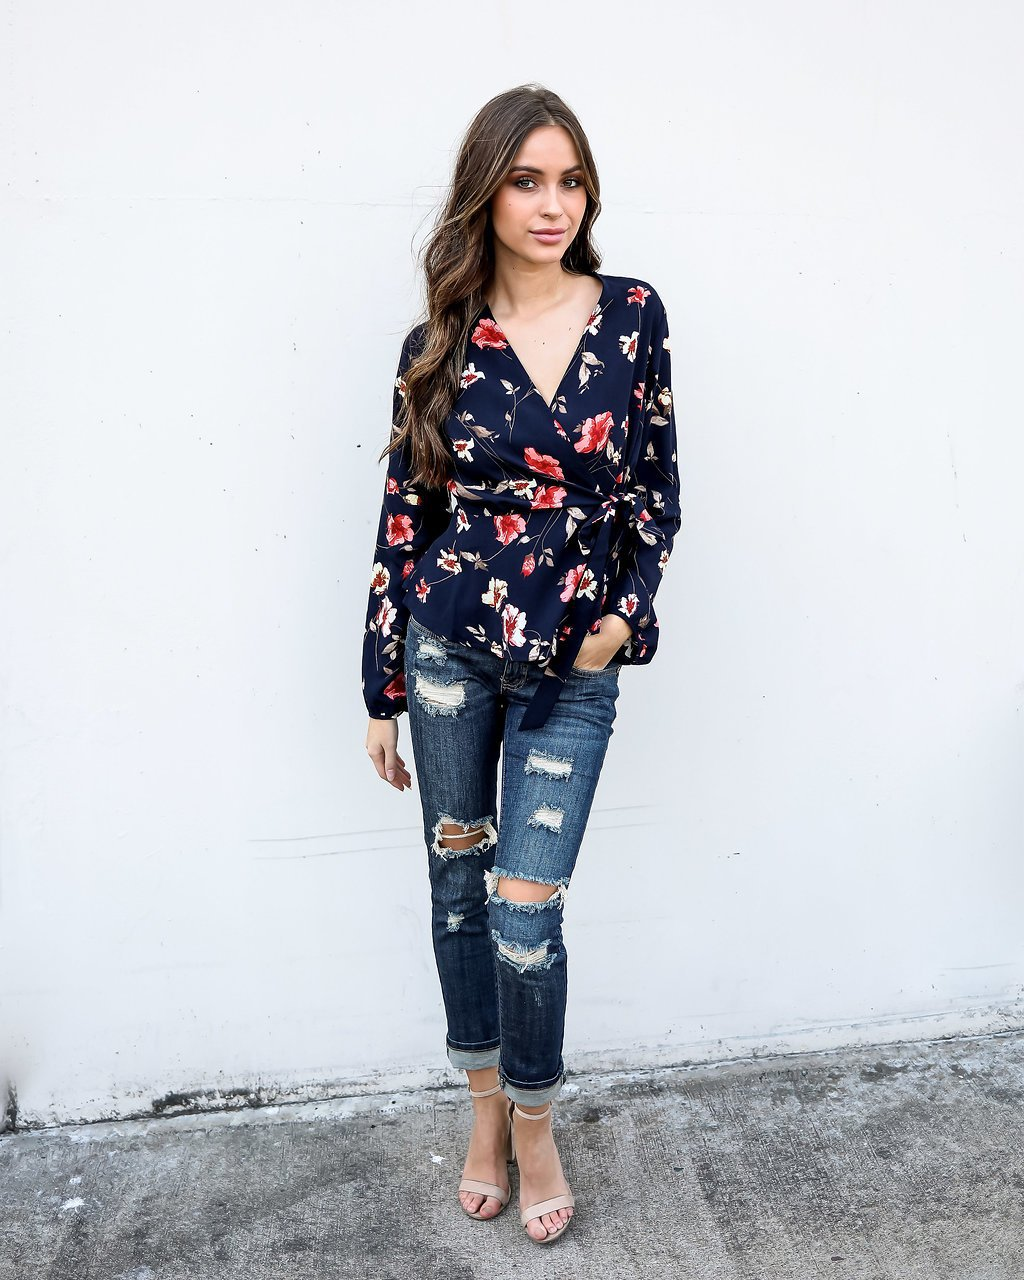 new women blouse fashion 2020 female print fall autumn flower comfort elegance womens top shirt ladies clothing top xxl